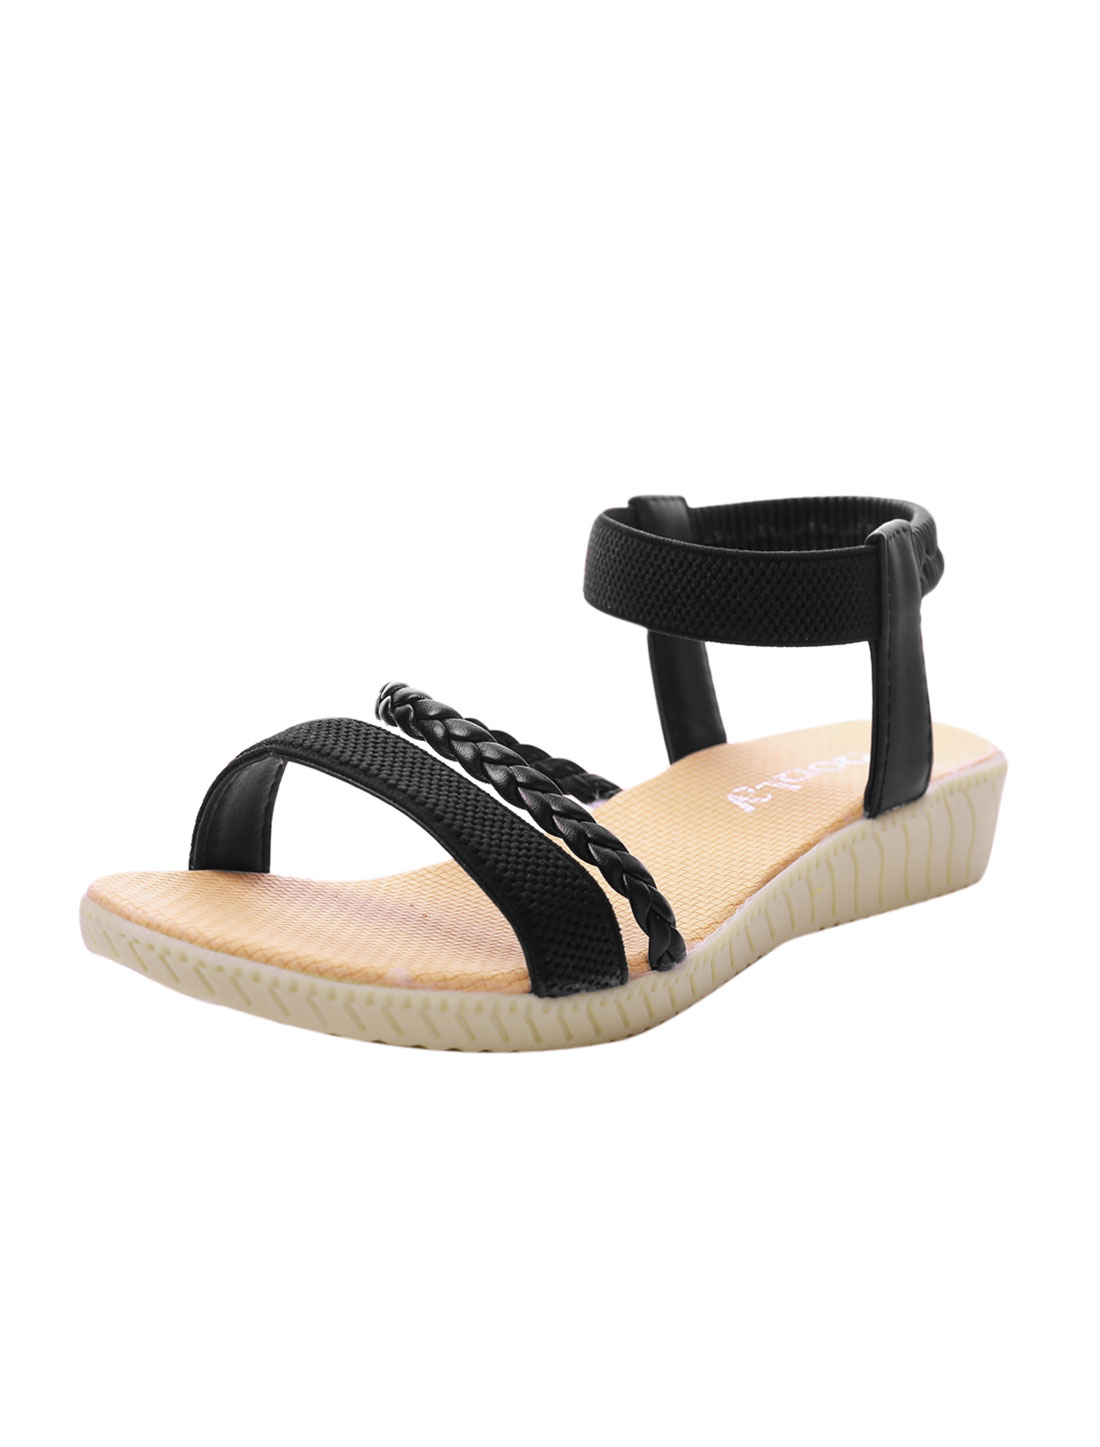 Woman Elasticed Strap Panel Summer Leisure Sandals Black US 5.5